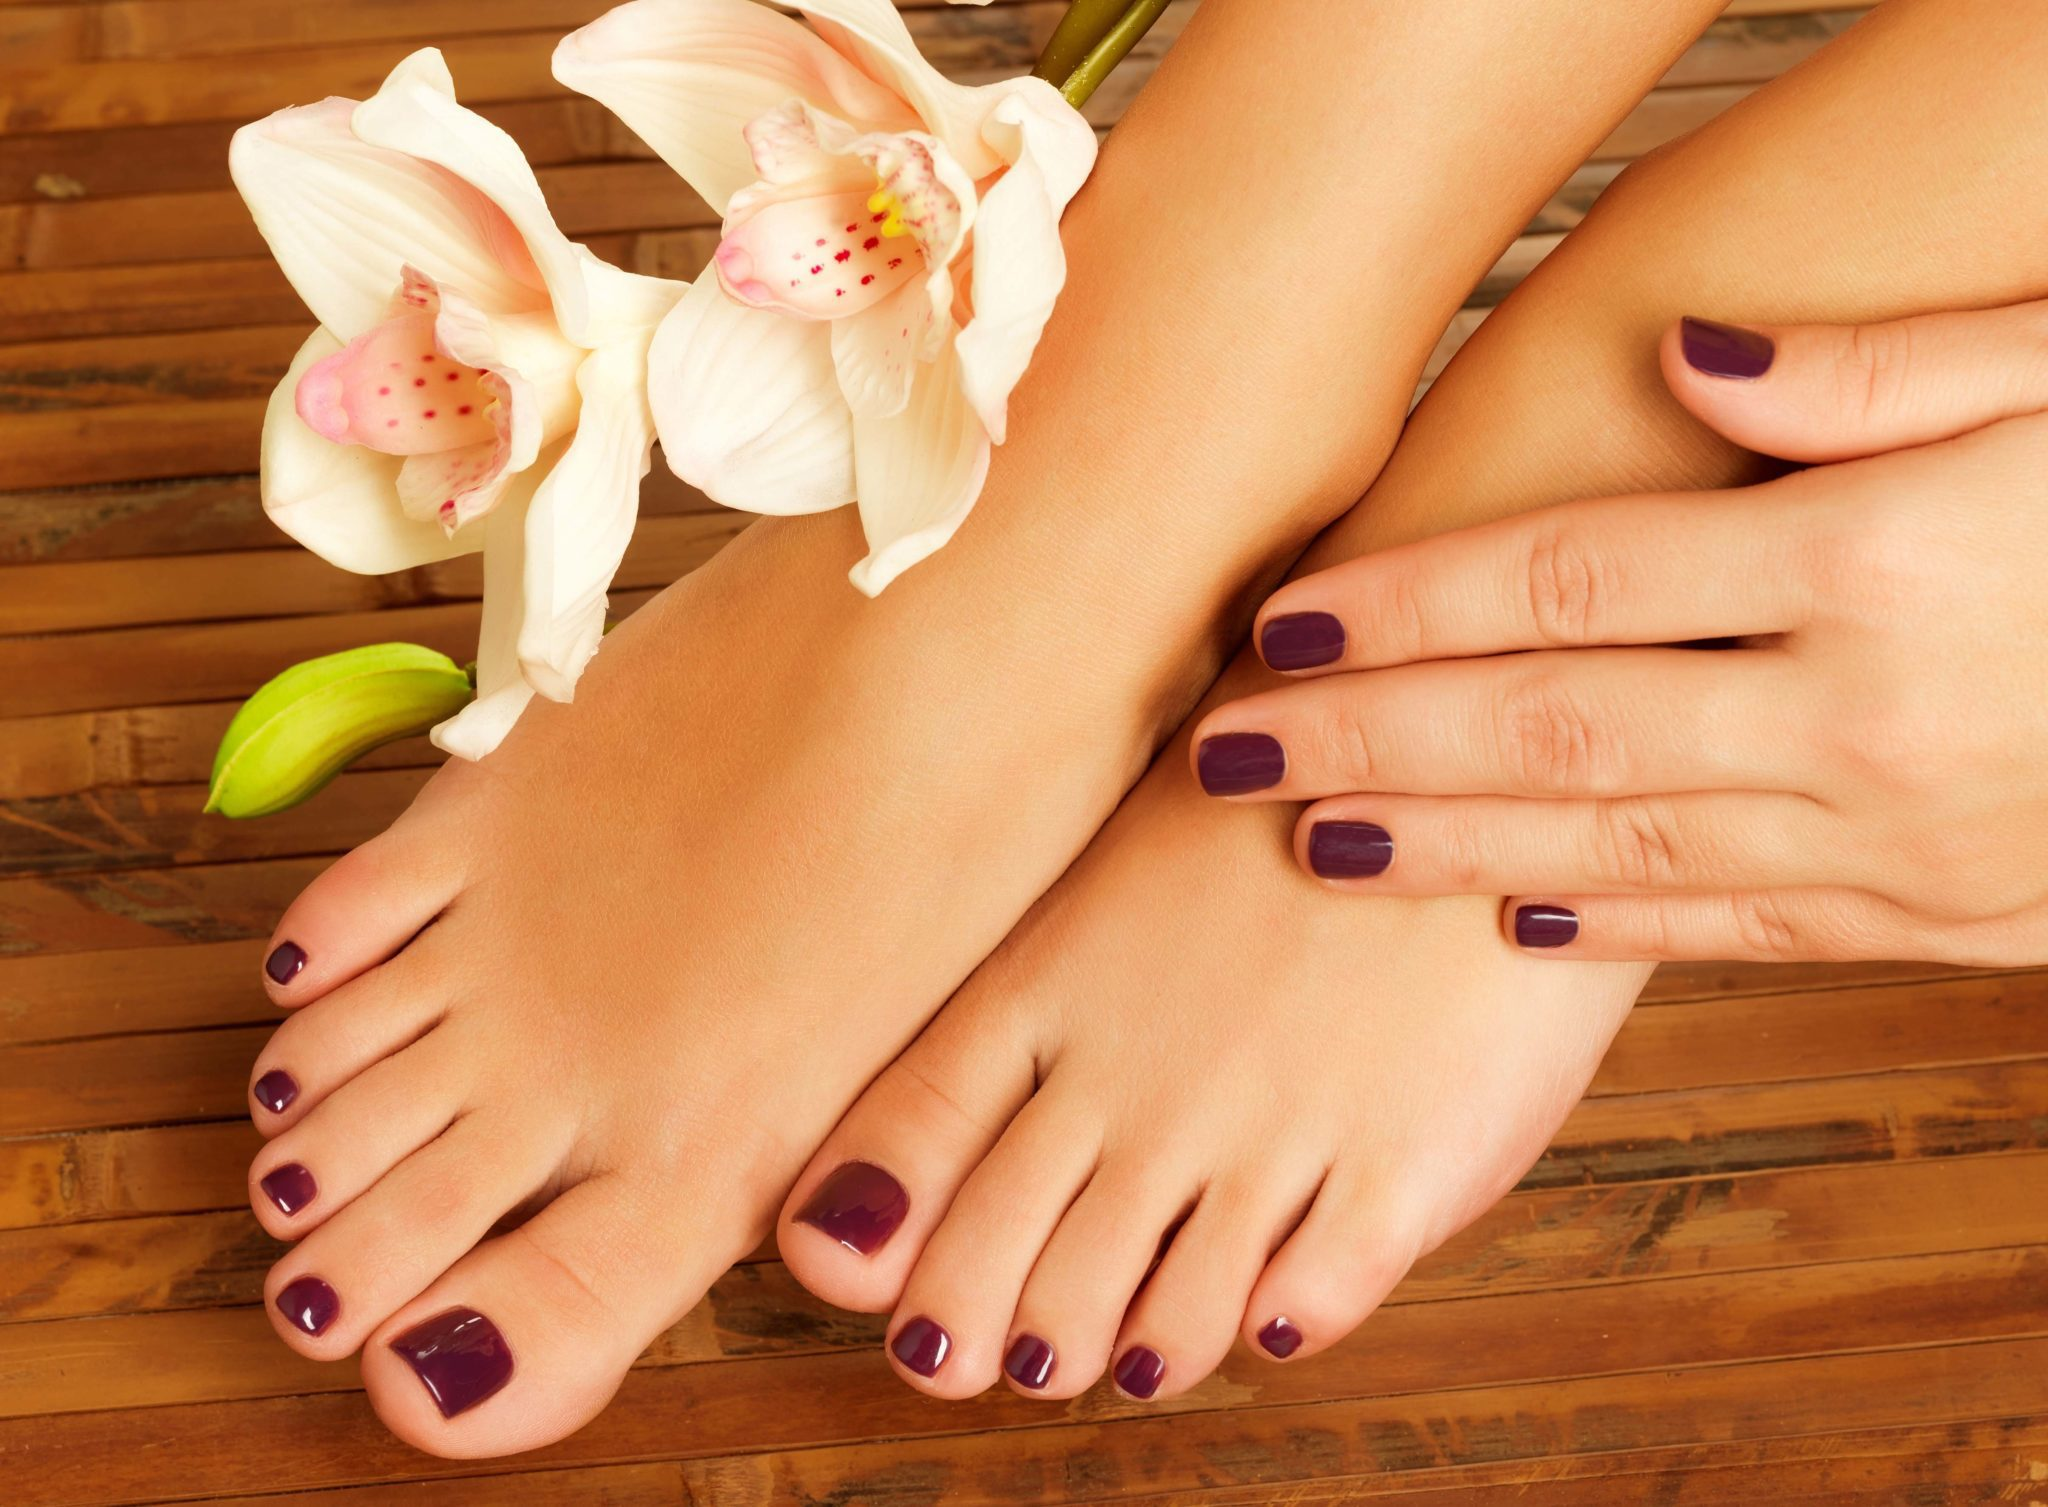 Nails and Toes | Fringe217 Salon & Spa